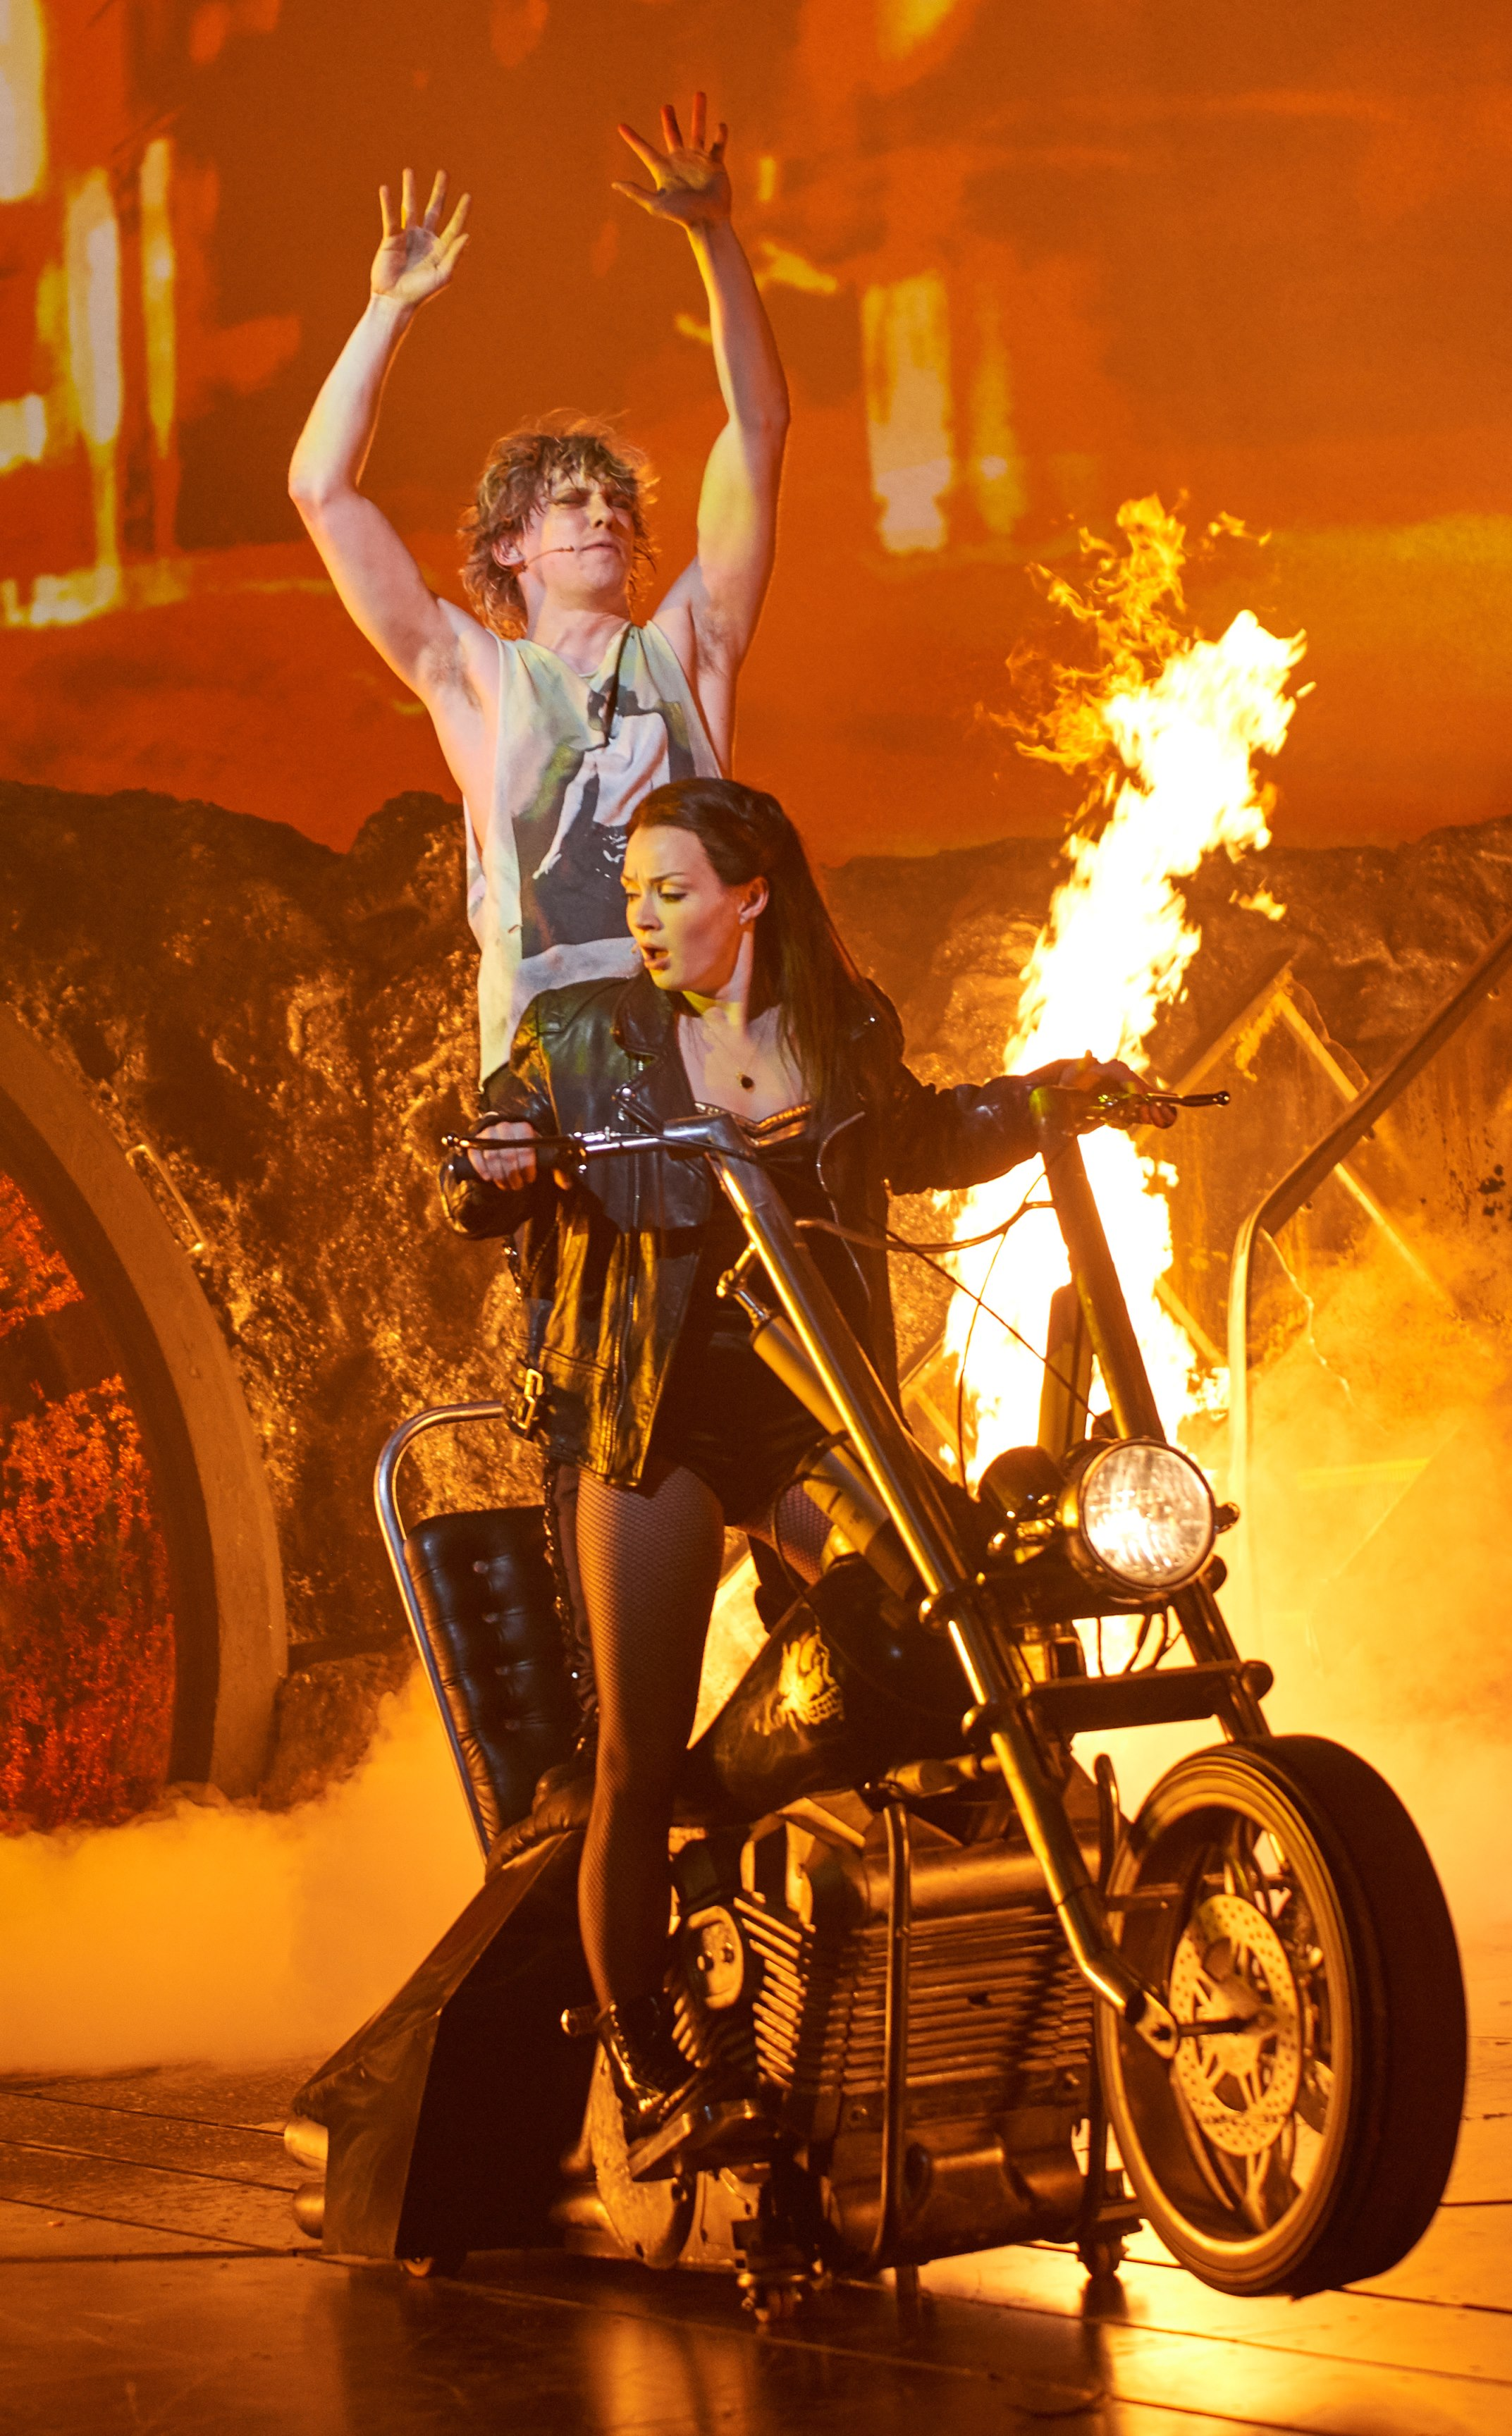 Andrew Polec as Strat & Christina Bennington as Raven in BAT OUT OF HELL credit Specular (3).jpg